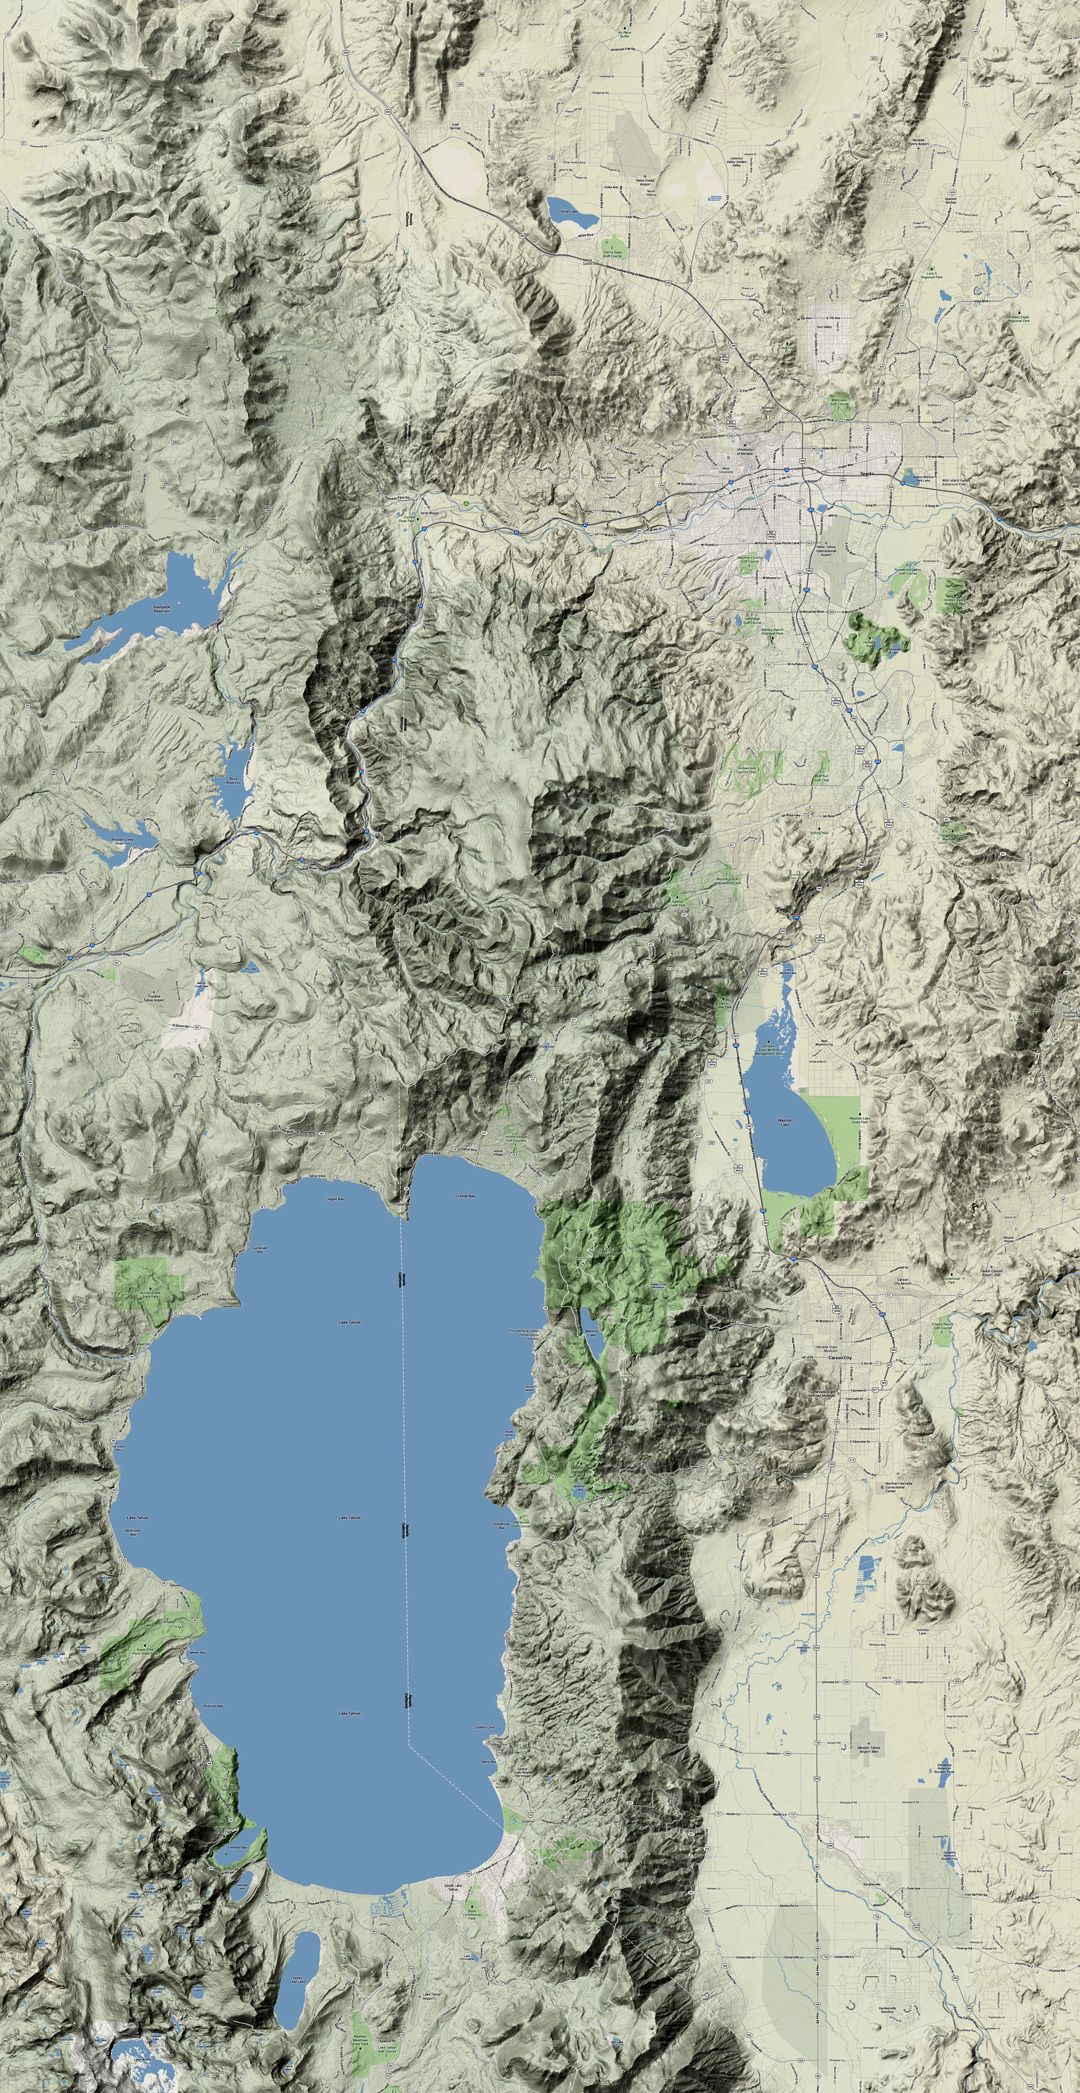 Reno Lake Tahoe Google Maps Terrain View Sierra Nevada Mnts - Map of reno and lake tahoe